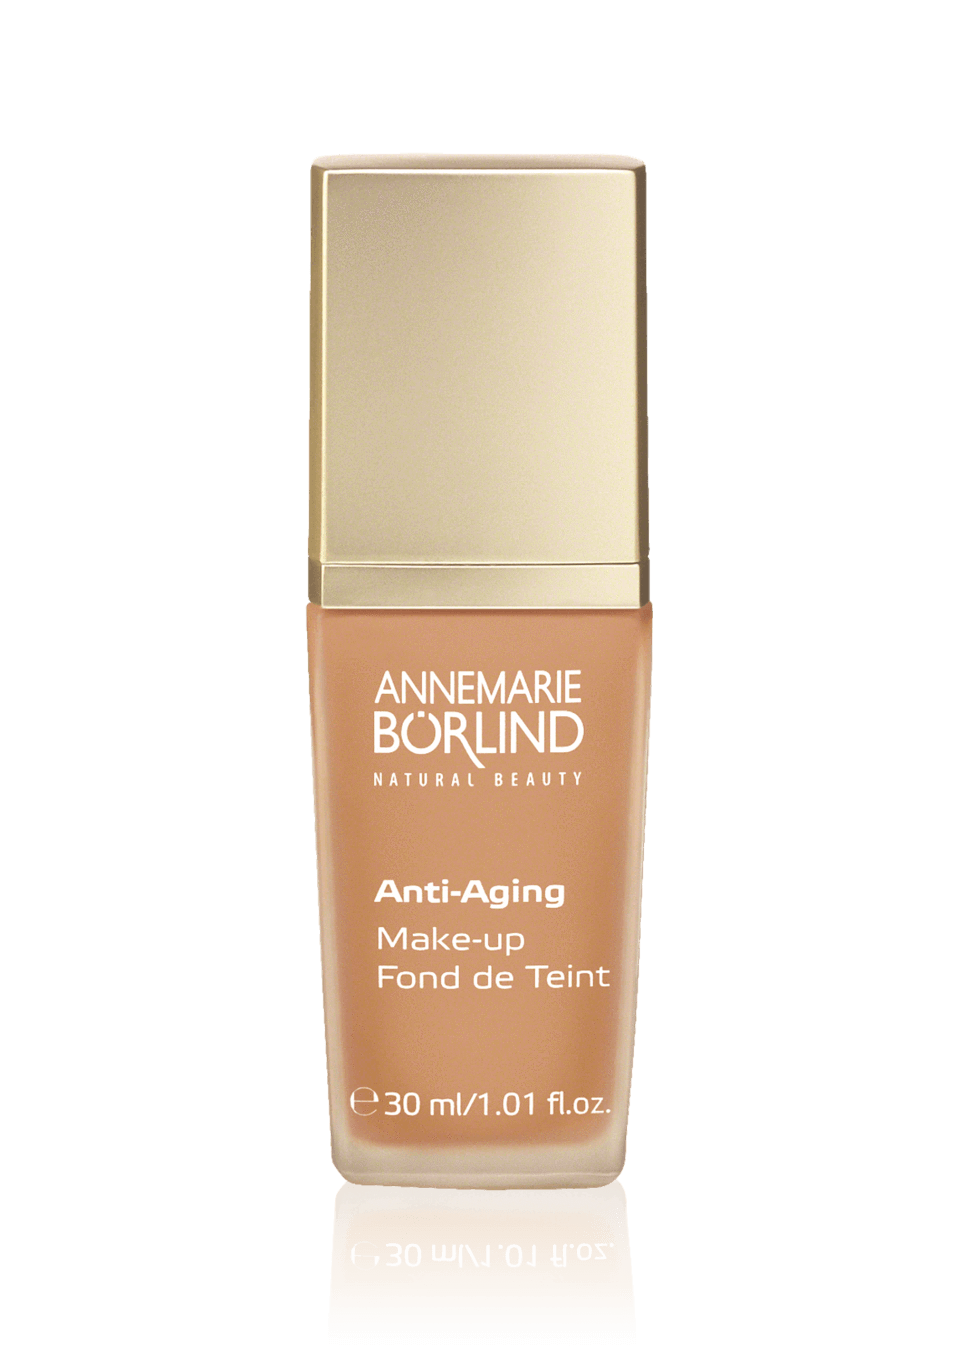 Personal Care - Annemarie Borlind Anti-Aging Makeup - Almond, 30mL